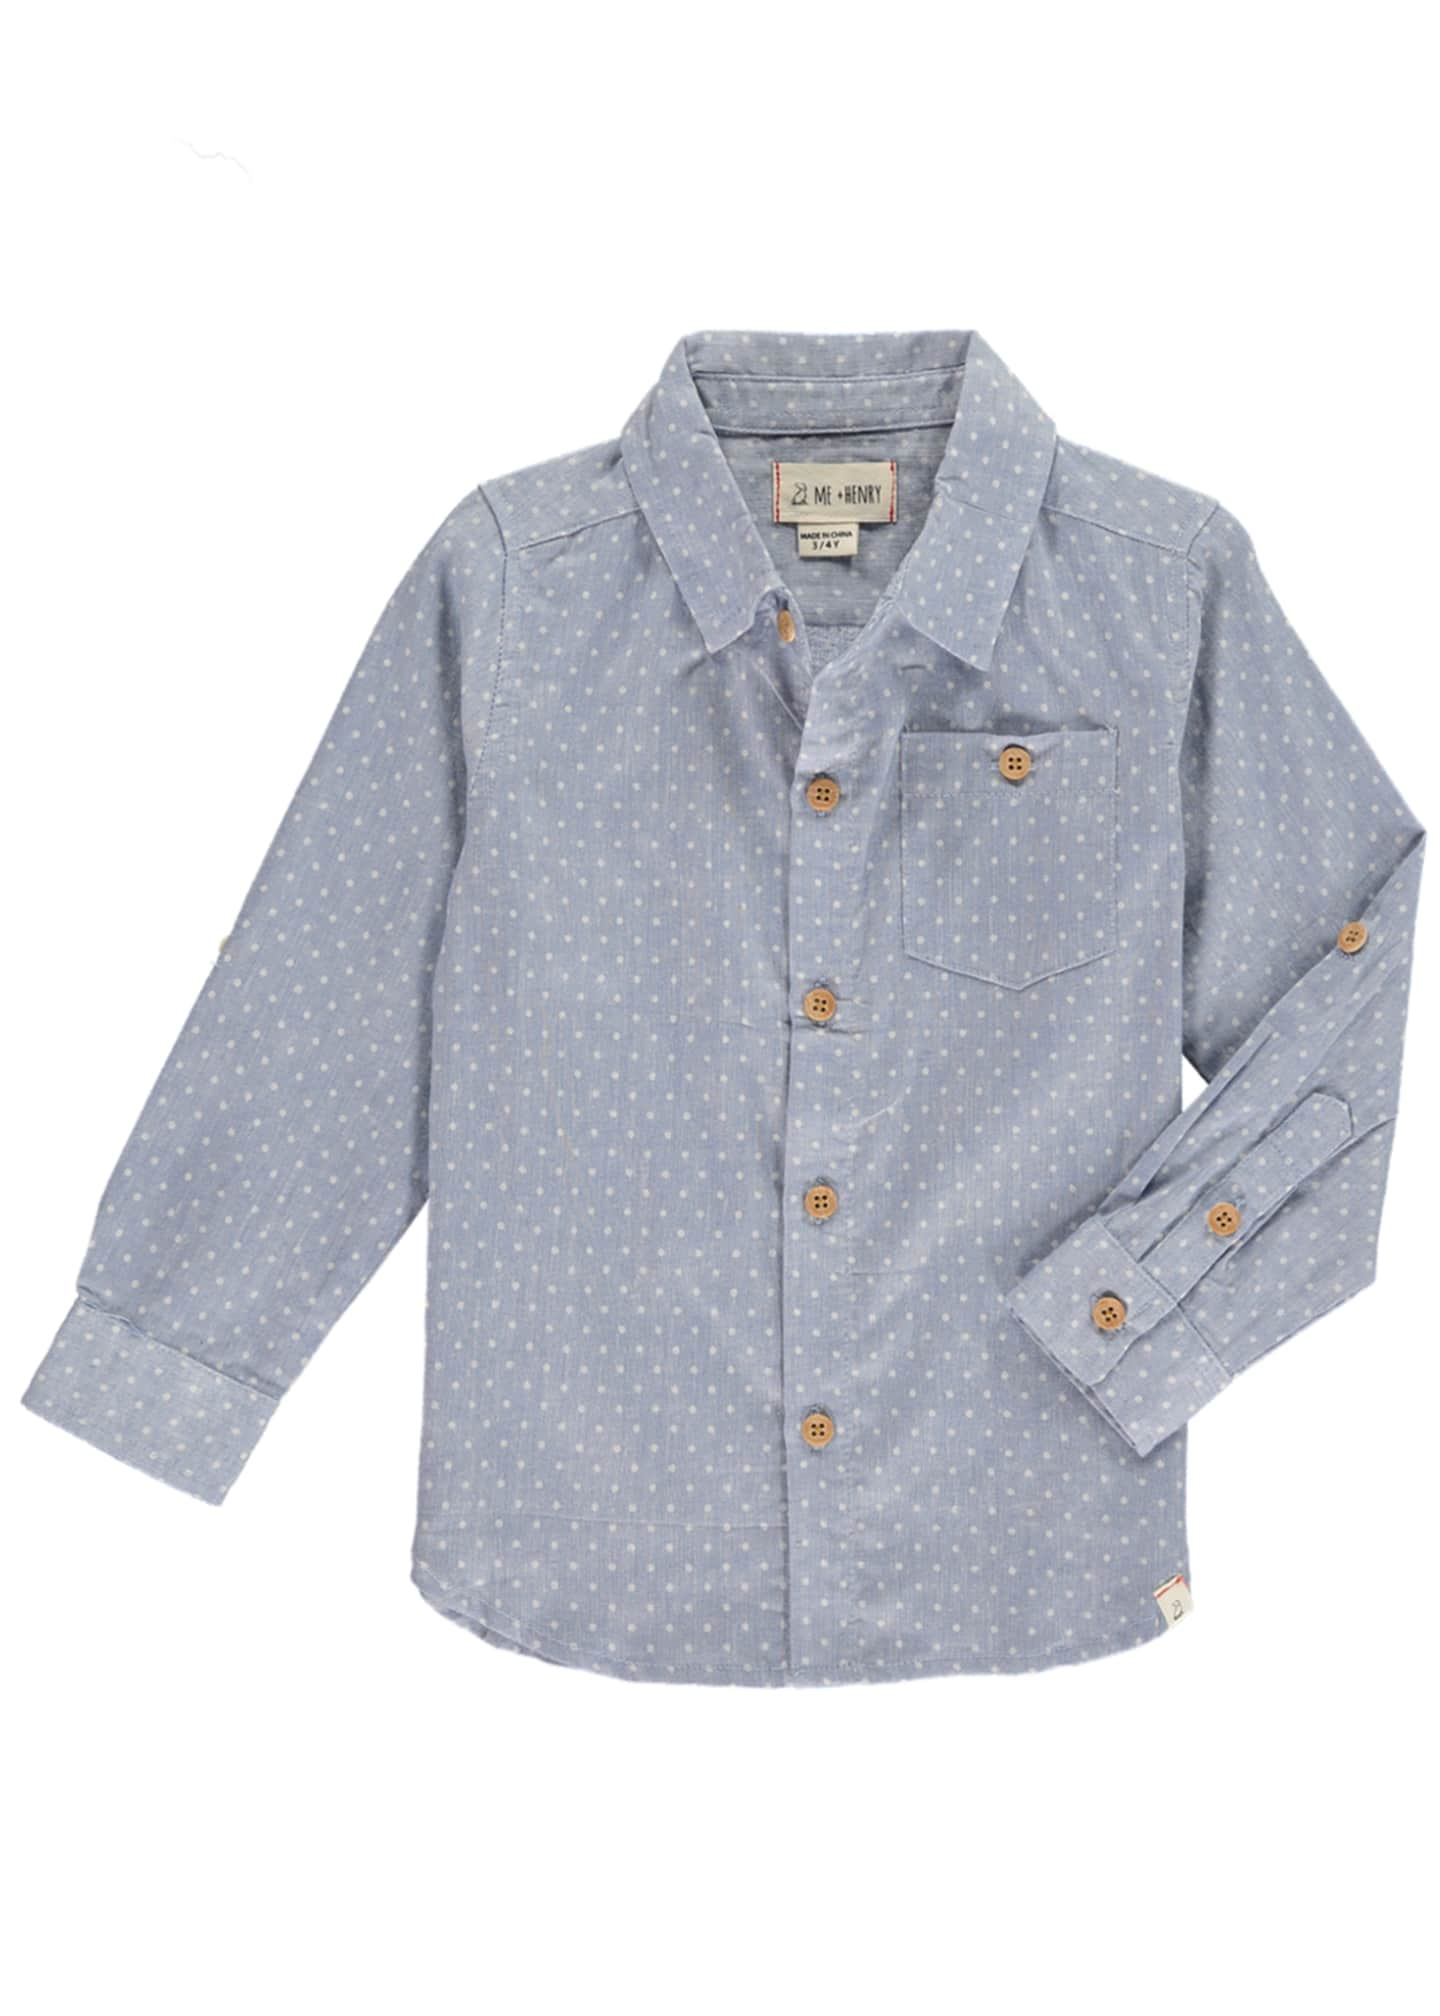 Me & Henry Spotted Woven Collared Shirt w/